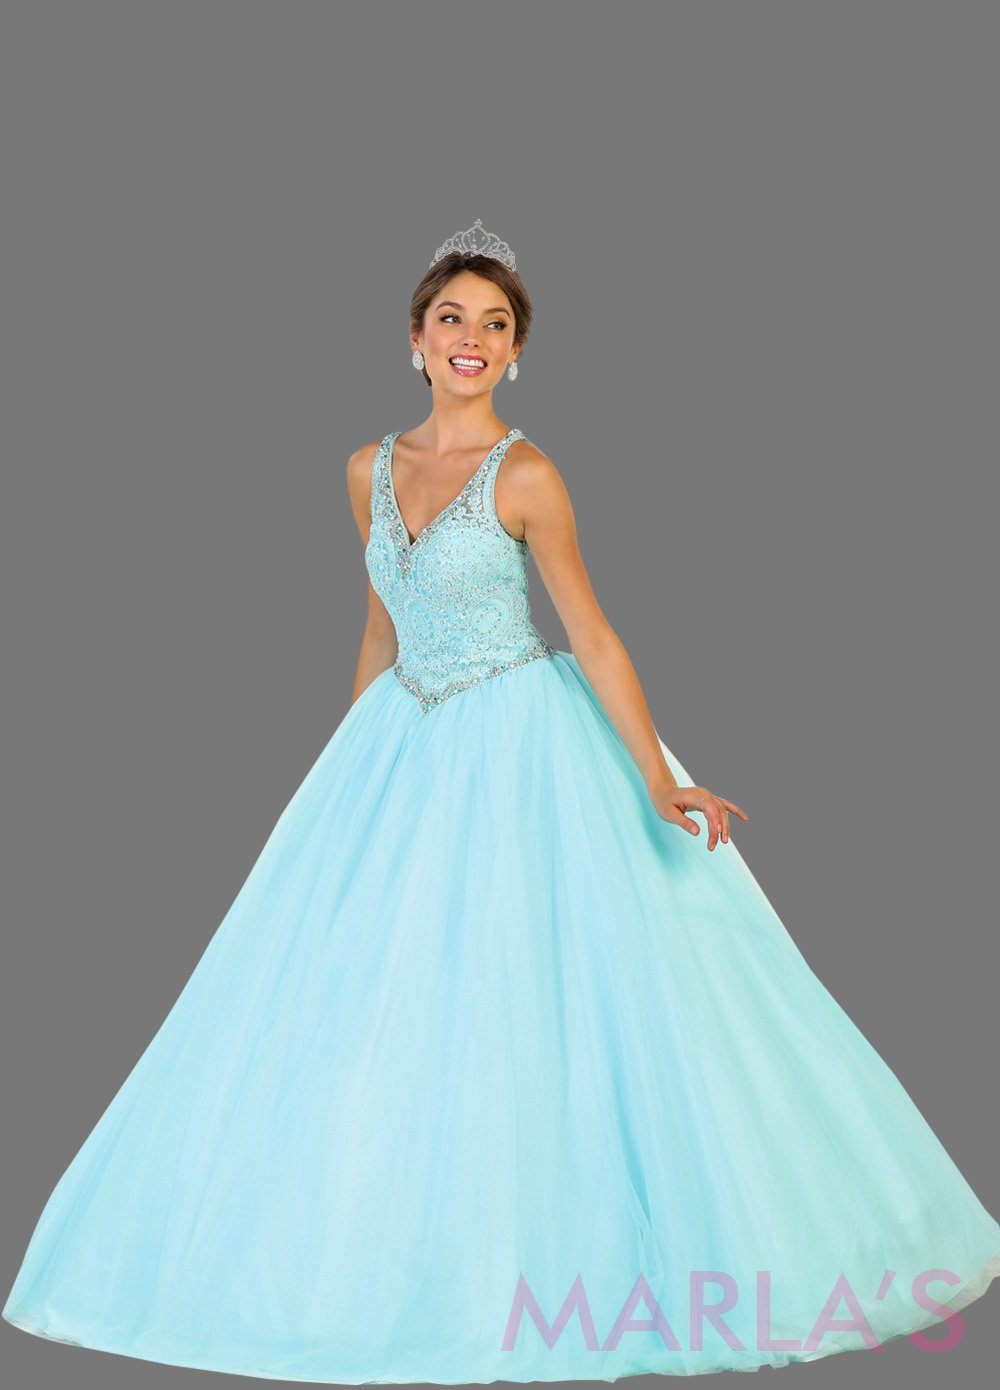 Back of Long v neck light blue princess ball gown with rhinestone beading Perfect for Engagement dress, Quinceanera, Sweet 16, Swet 15 and aqua blue Wedding Reception Dress. Available in plus sizes